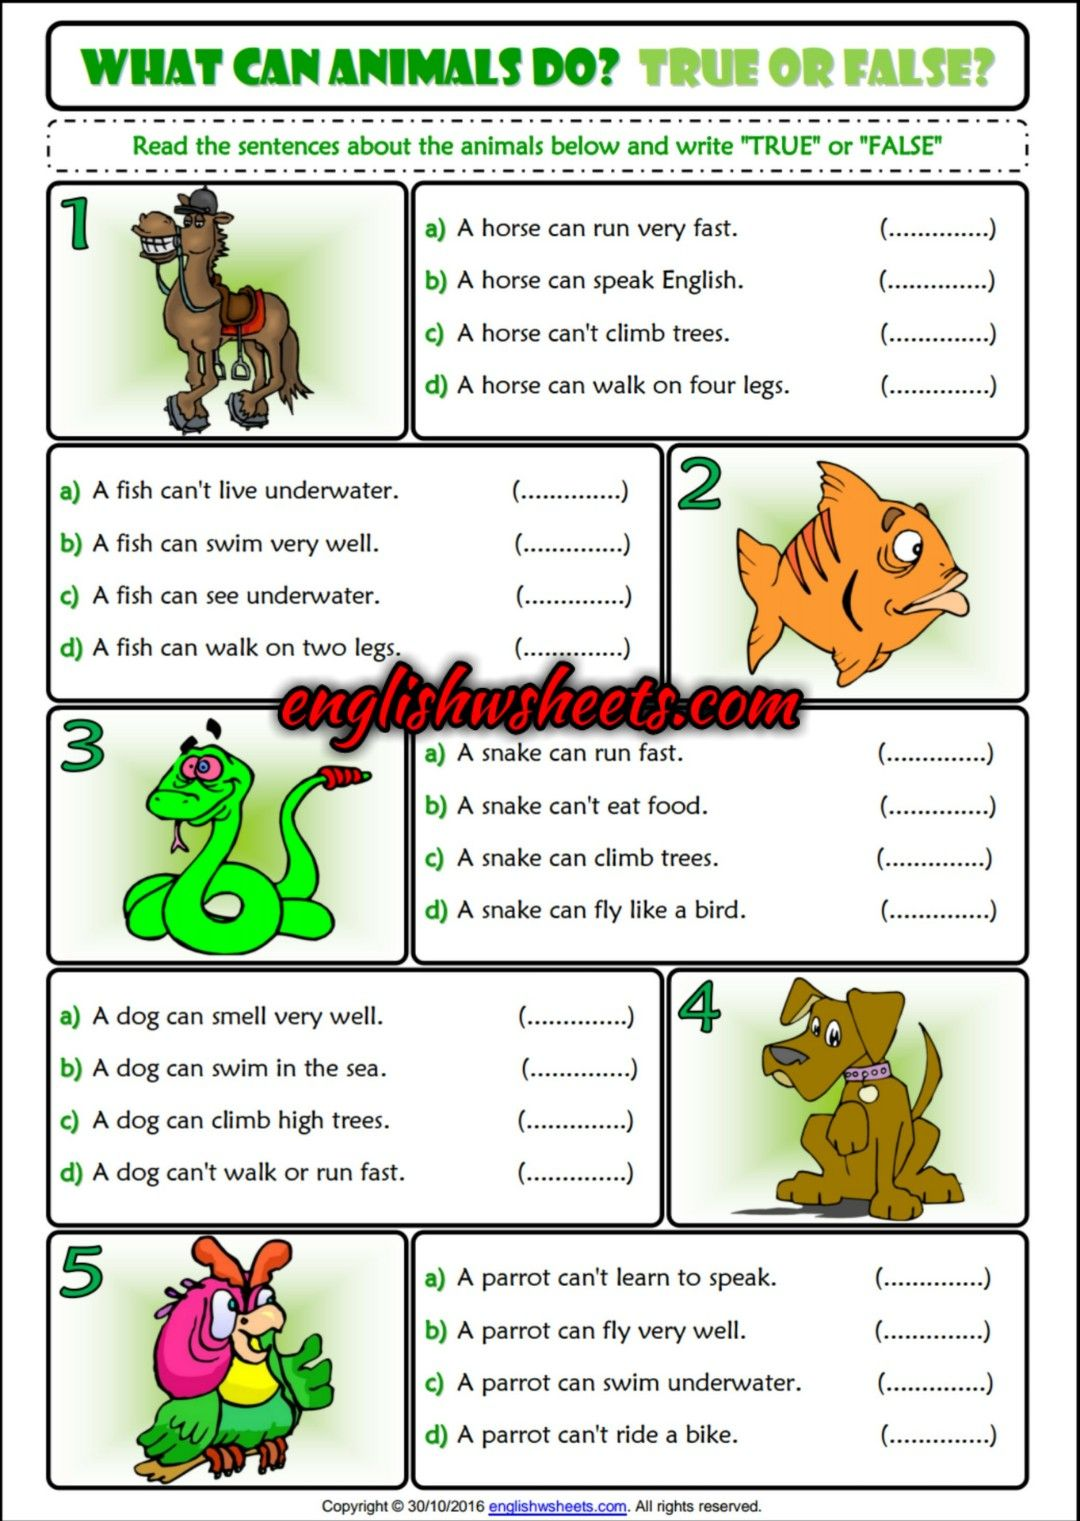 what can animals do true or false esl printable grammar exercise handout ability inability. Black Bedroom Furniture Sets. Home Design Ideas